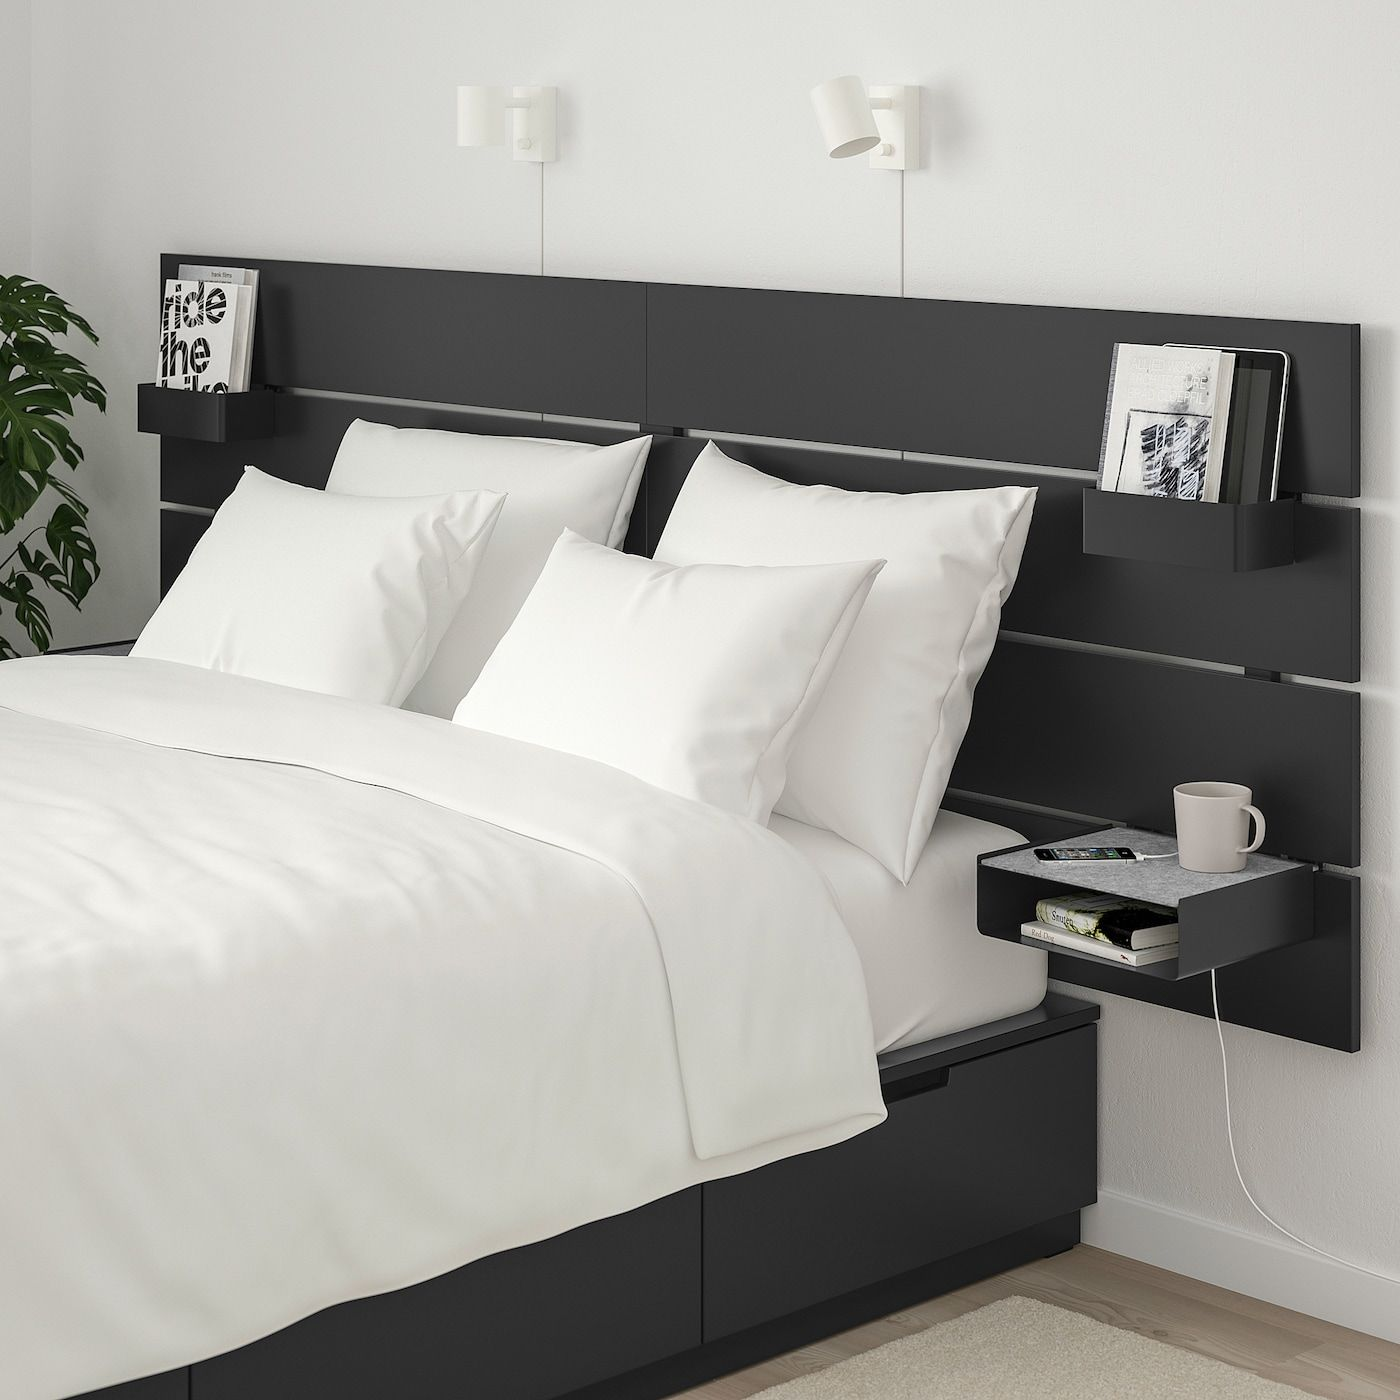 Nordli Bed With Headboard And Storage Anthracite Queen Ikea Headboards For Beds Bed Frame With Storage Headboard Storage